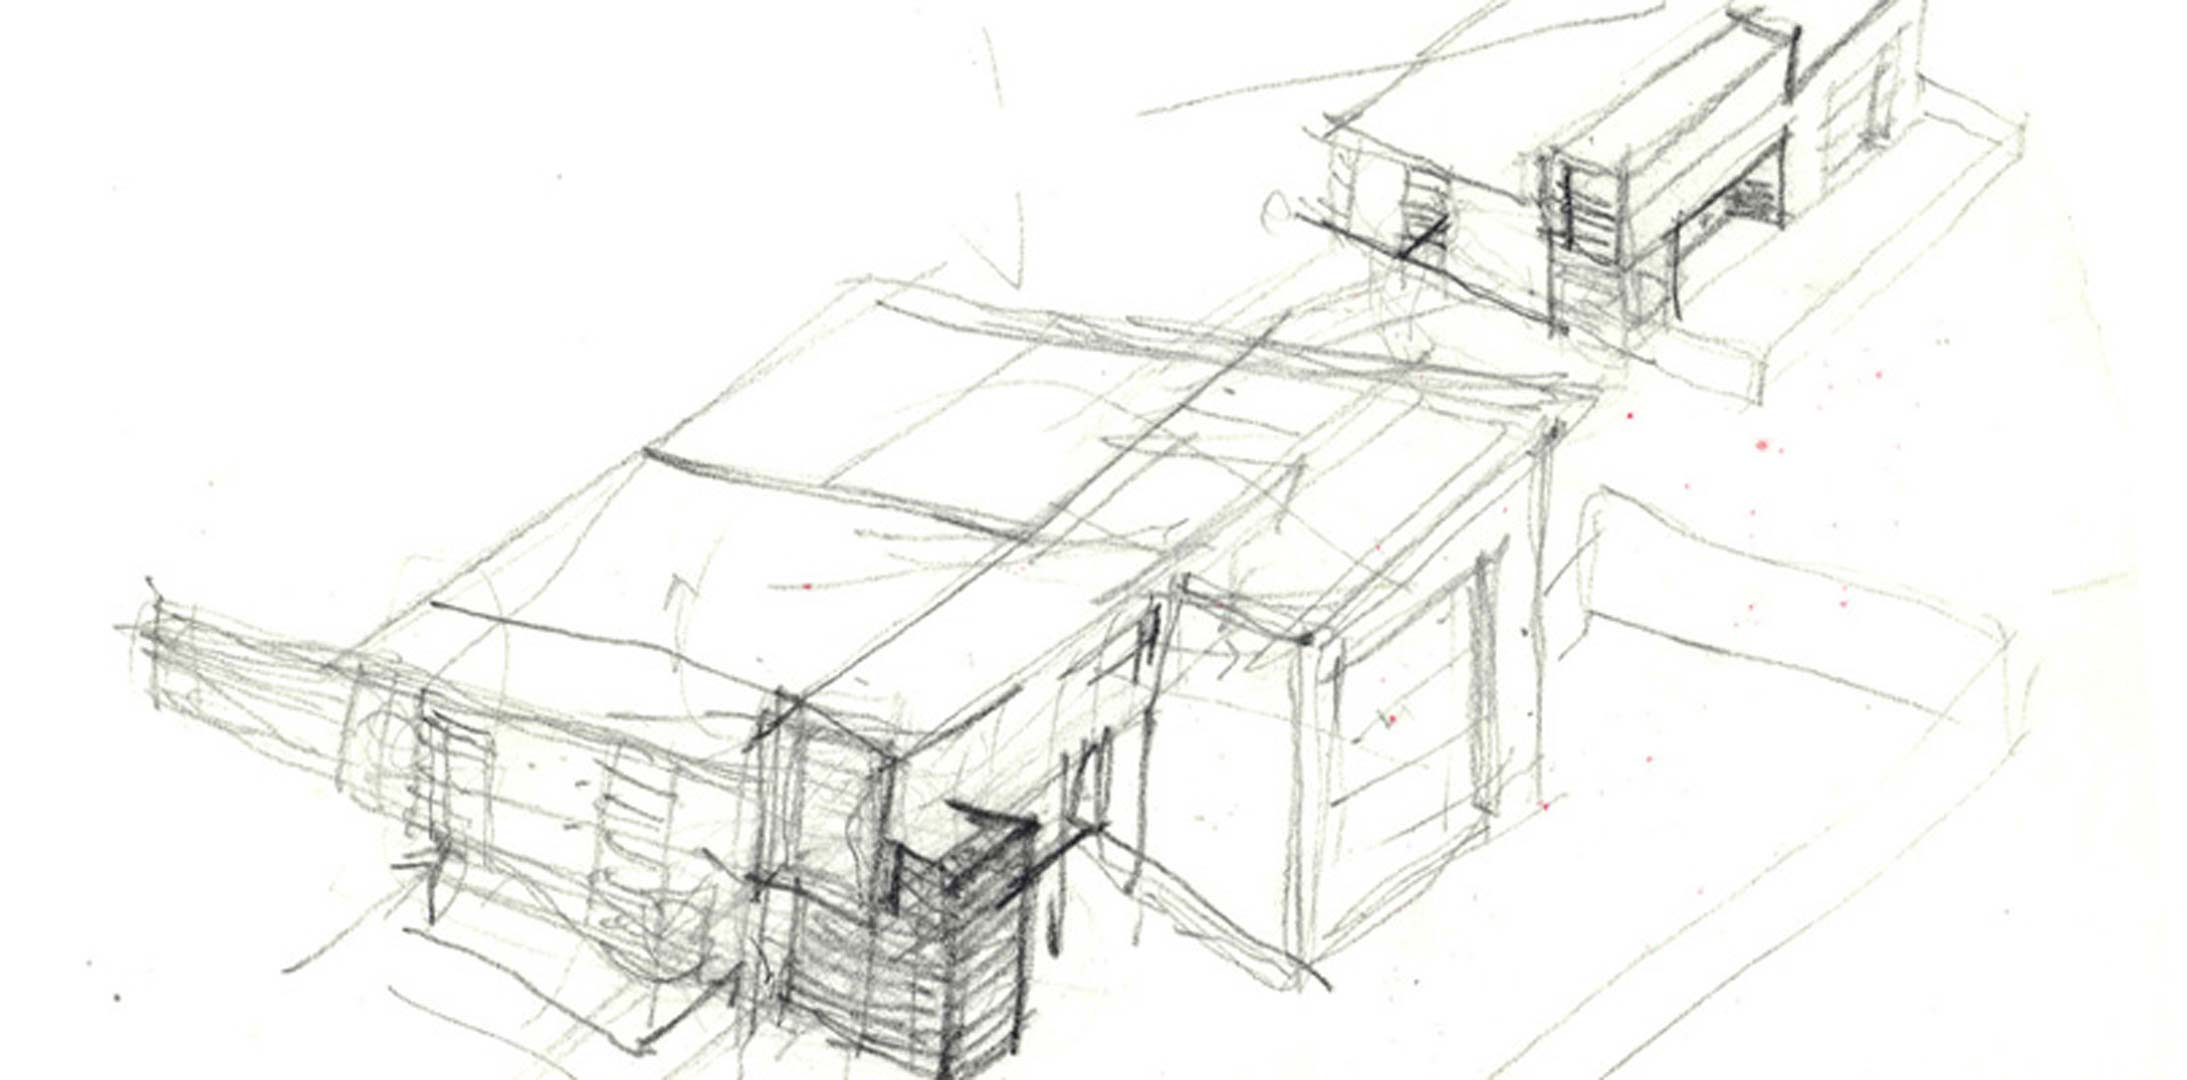 BRAND Photodesign Studio - Process Sketch, HAUS Architecture, Christopher Short, Indianapolis Architect